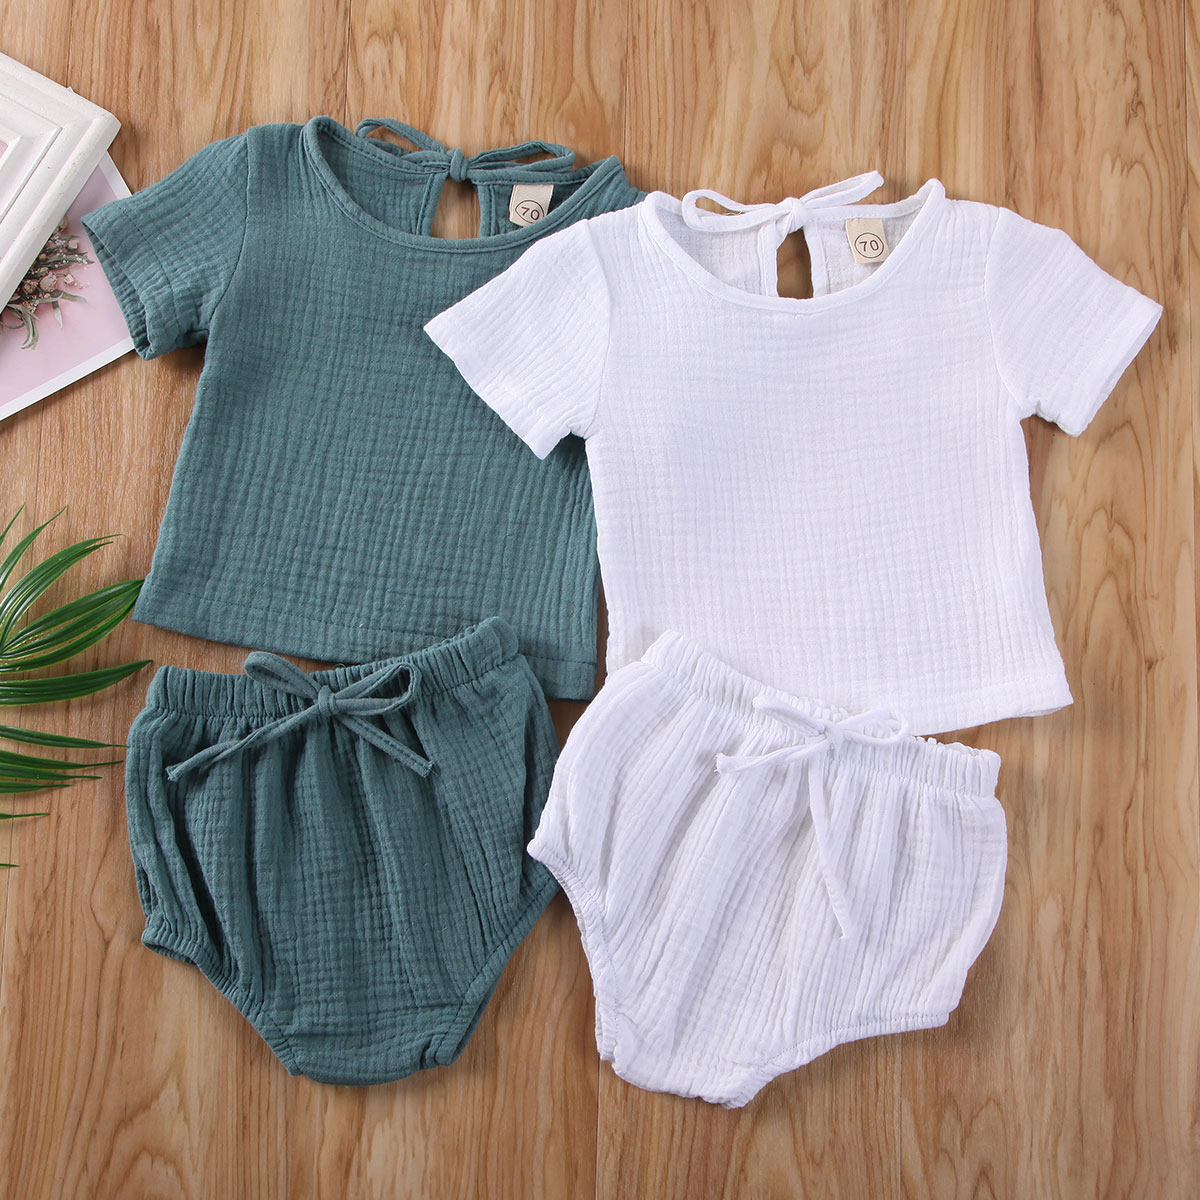 2019 New Arrival Newborn Kids Baby Boy Girl Clothes Cotton & Linen Tops+Shorts Pants Outfits Set